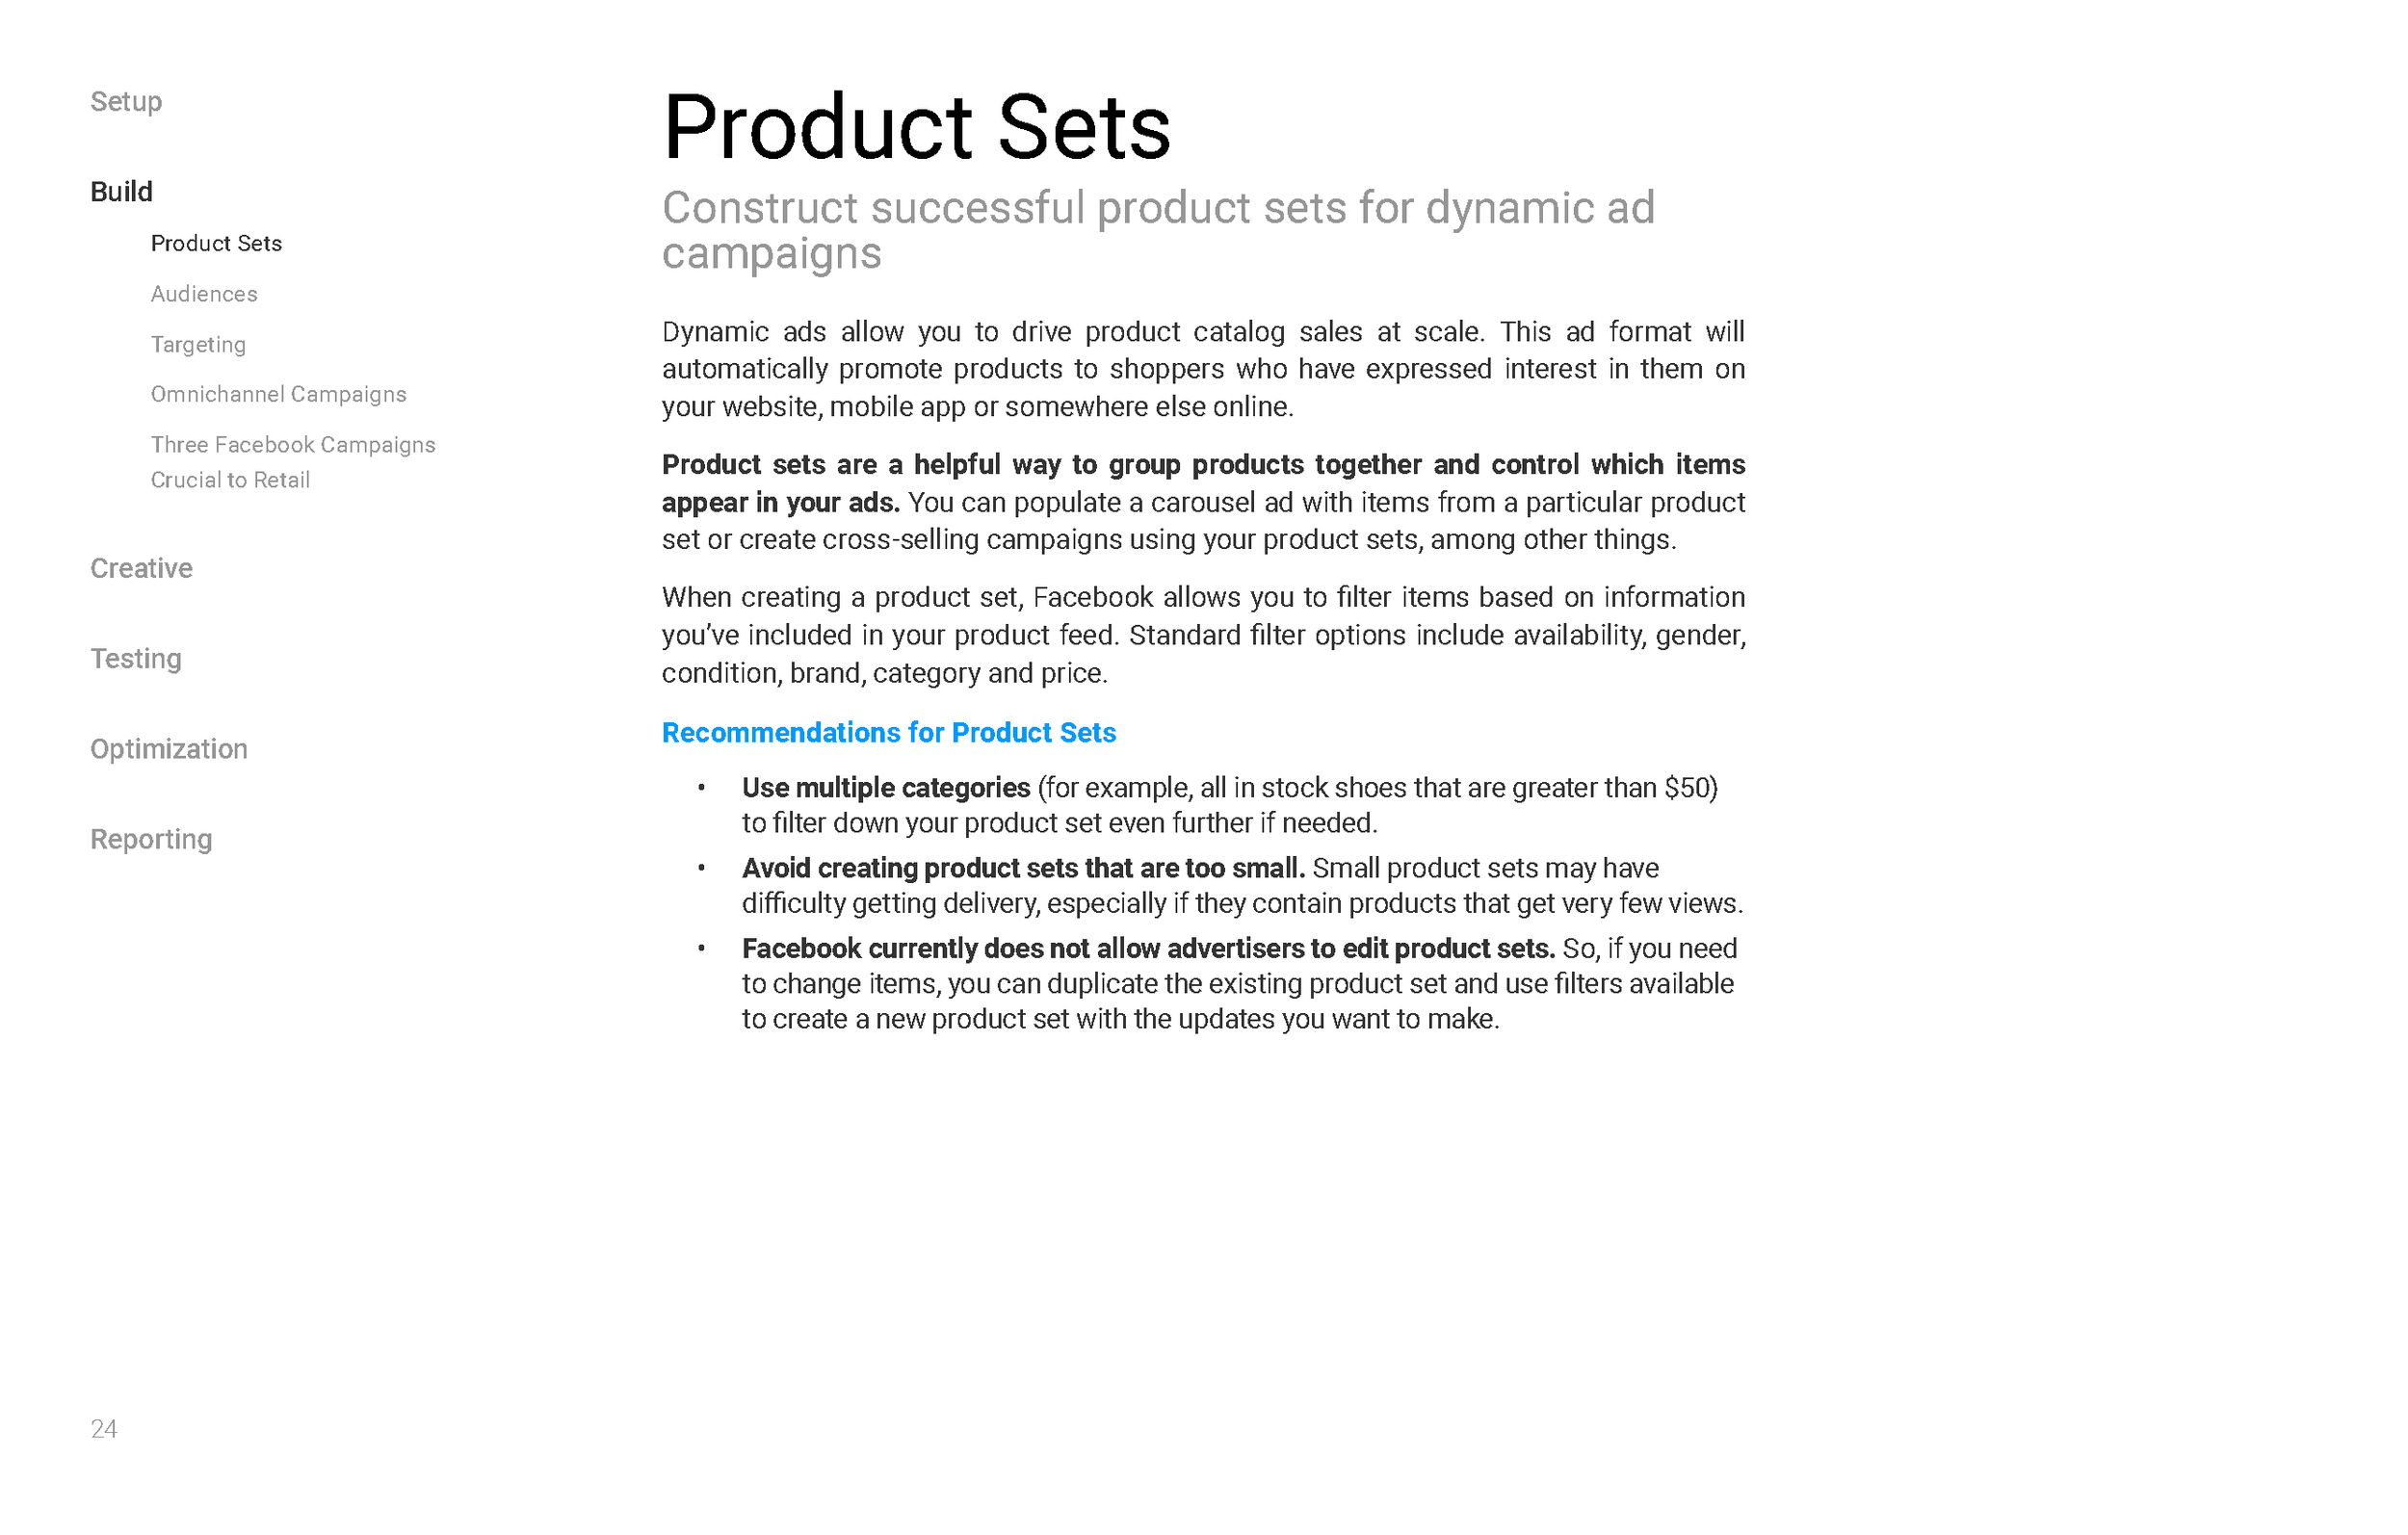 retail playbook _Page_024.png